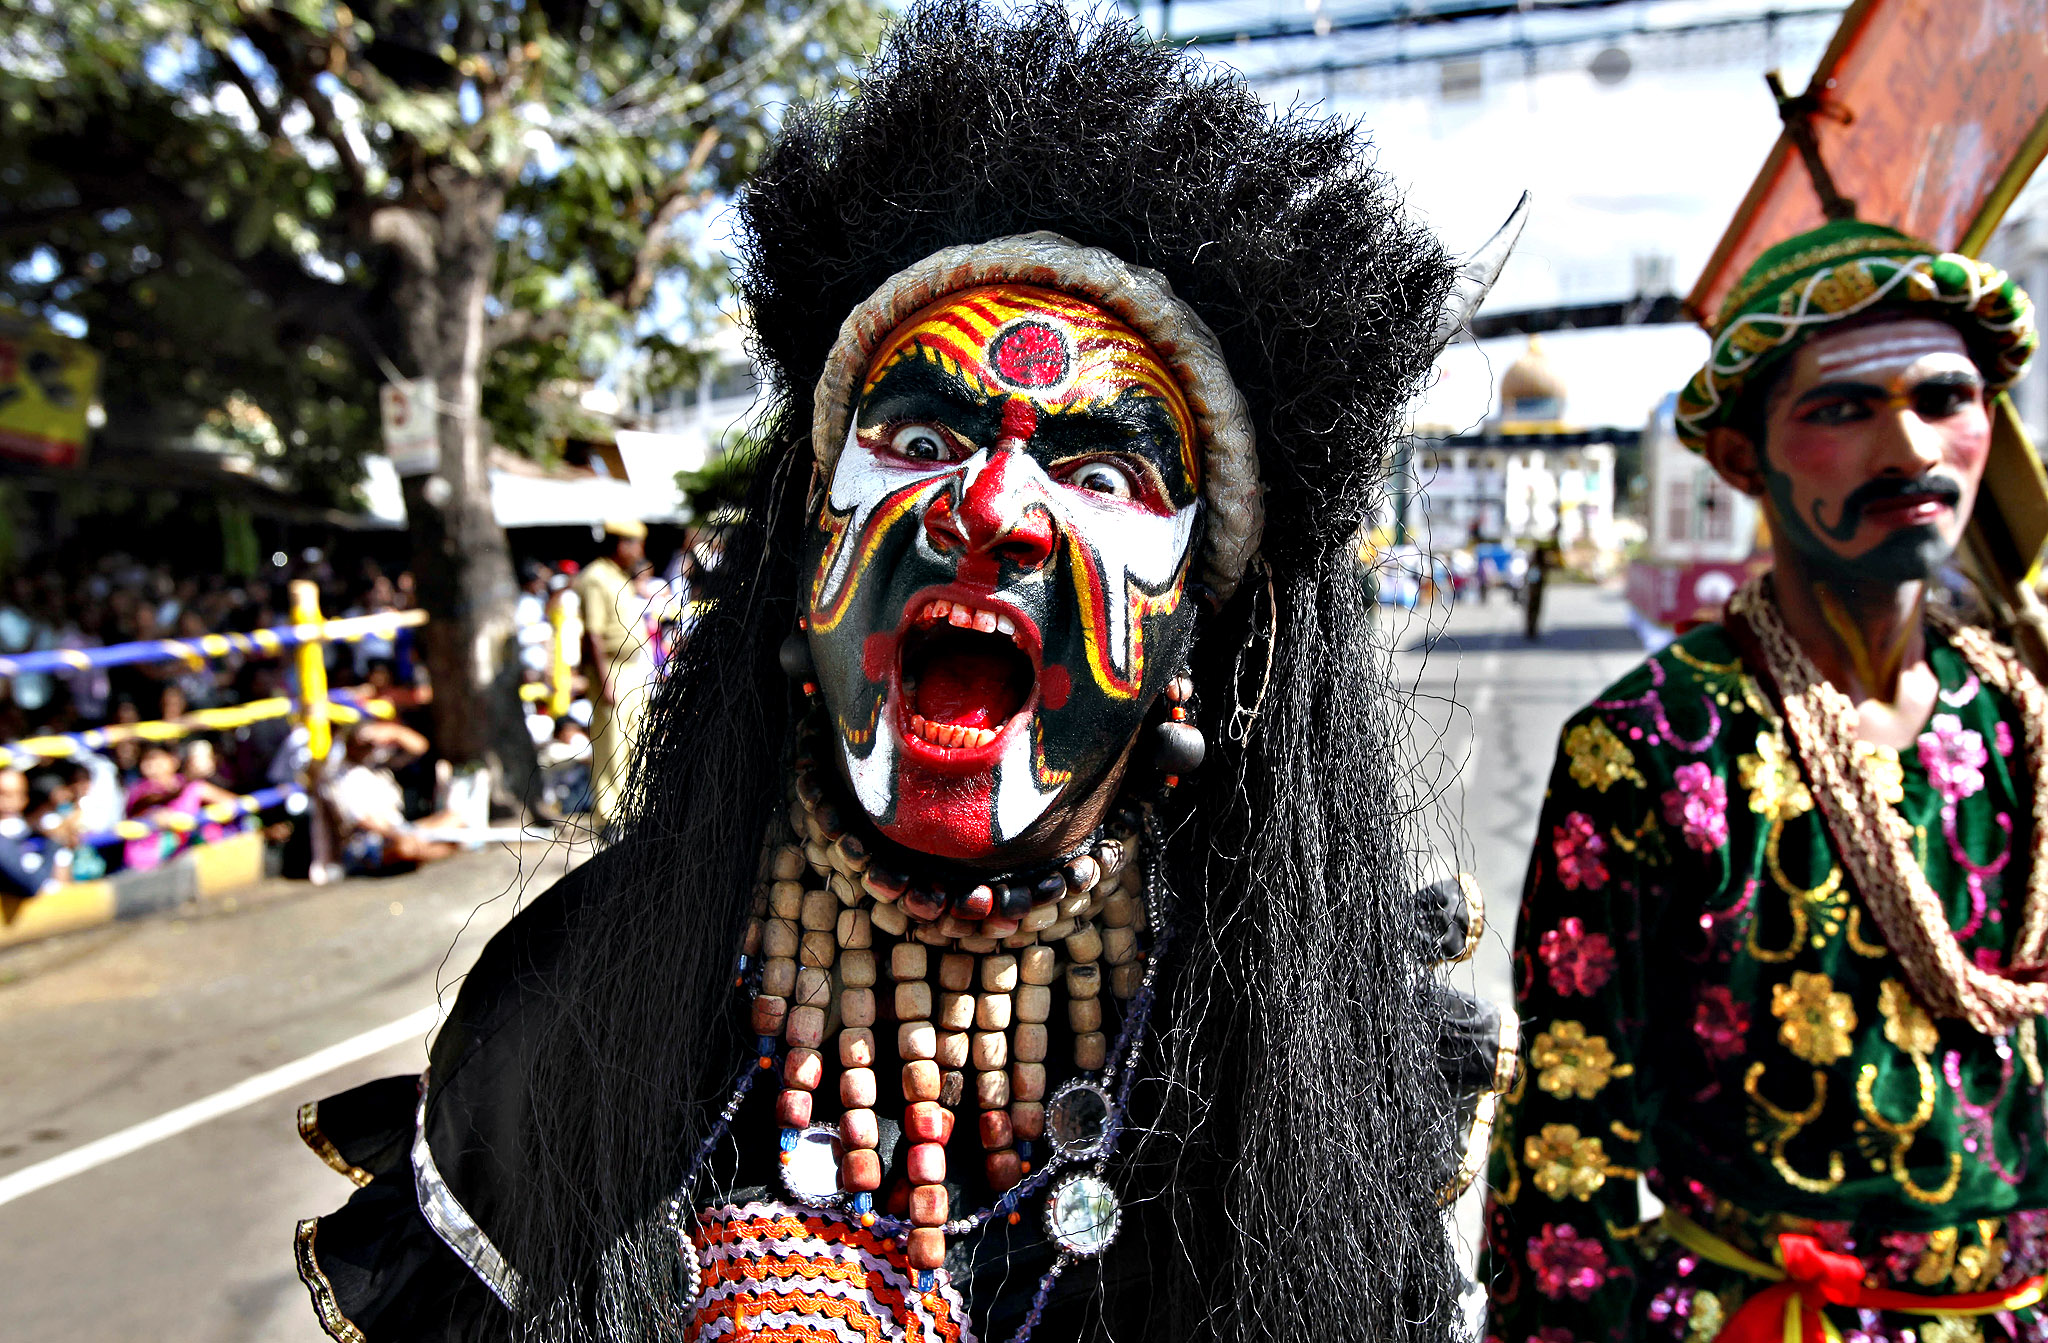 An Indian artist dressed as a devil gestures to the camera during a procession on the last day of Dusshera celebrations in Mysore, India, Monday, Oct. 14, 2013. According to Hindu mythology the festival celebrates the slaying of the demon Mahishasura by the goddess Chamundeeswari or Durga and the triumph of good over evil.